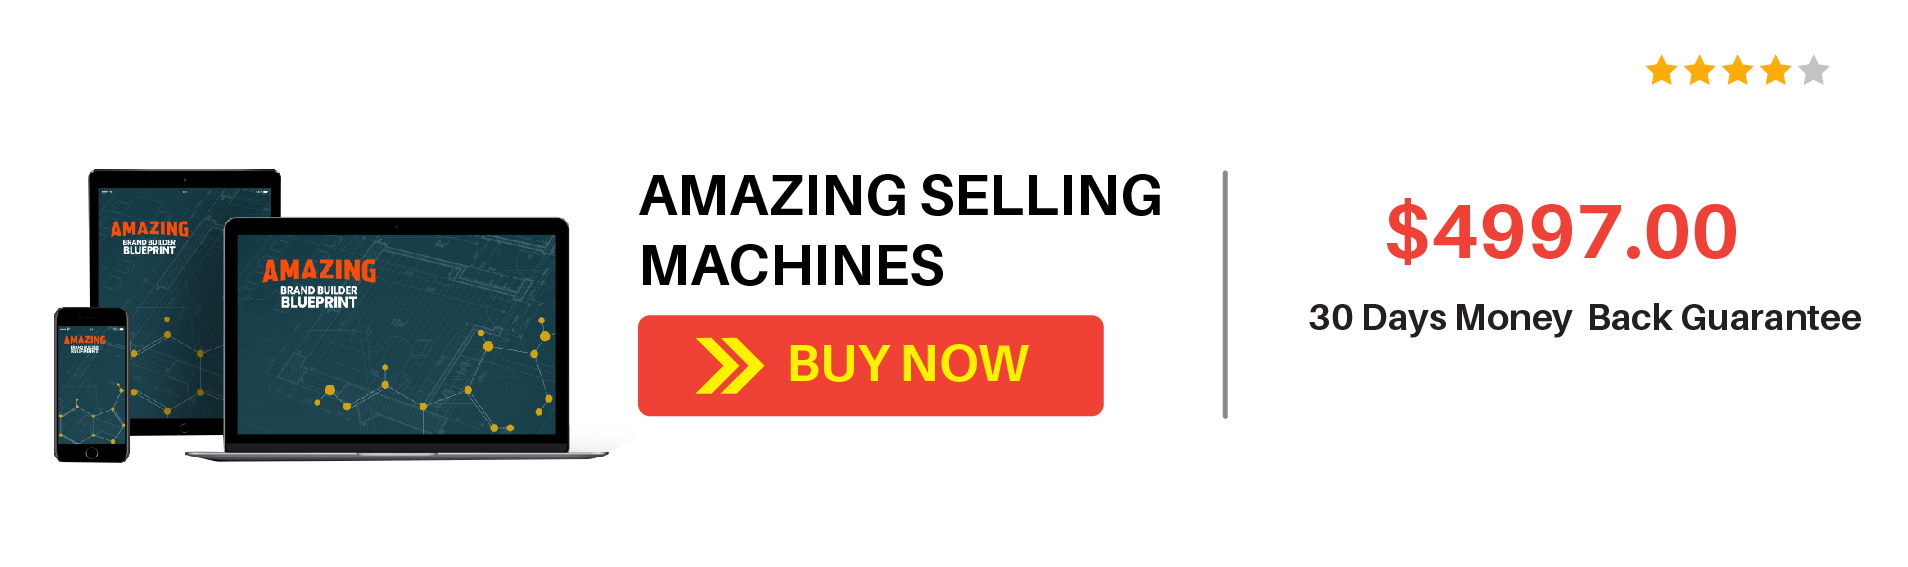 Amazing Selling Machines priceAmazing Selling Machines price